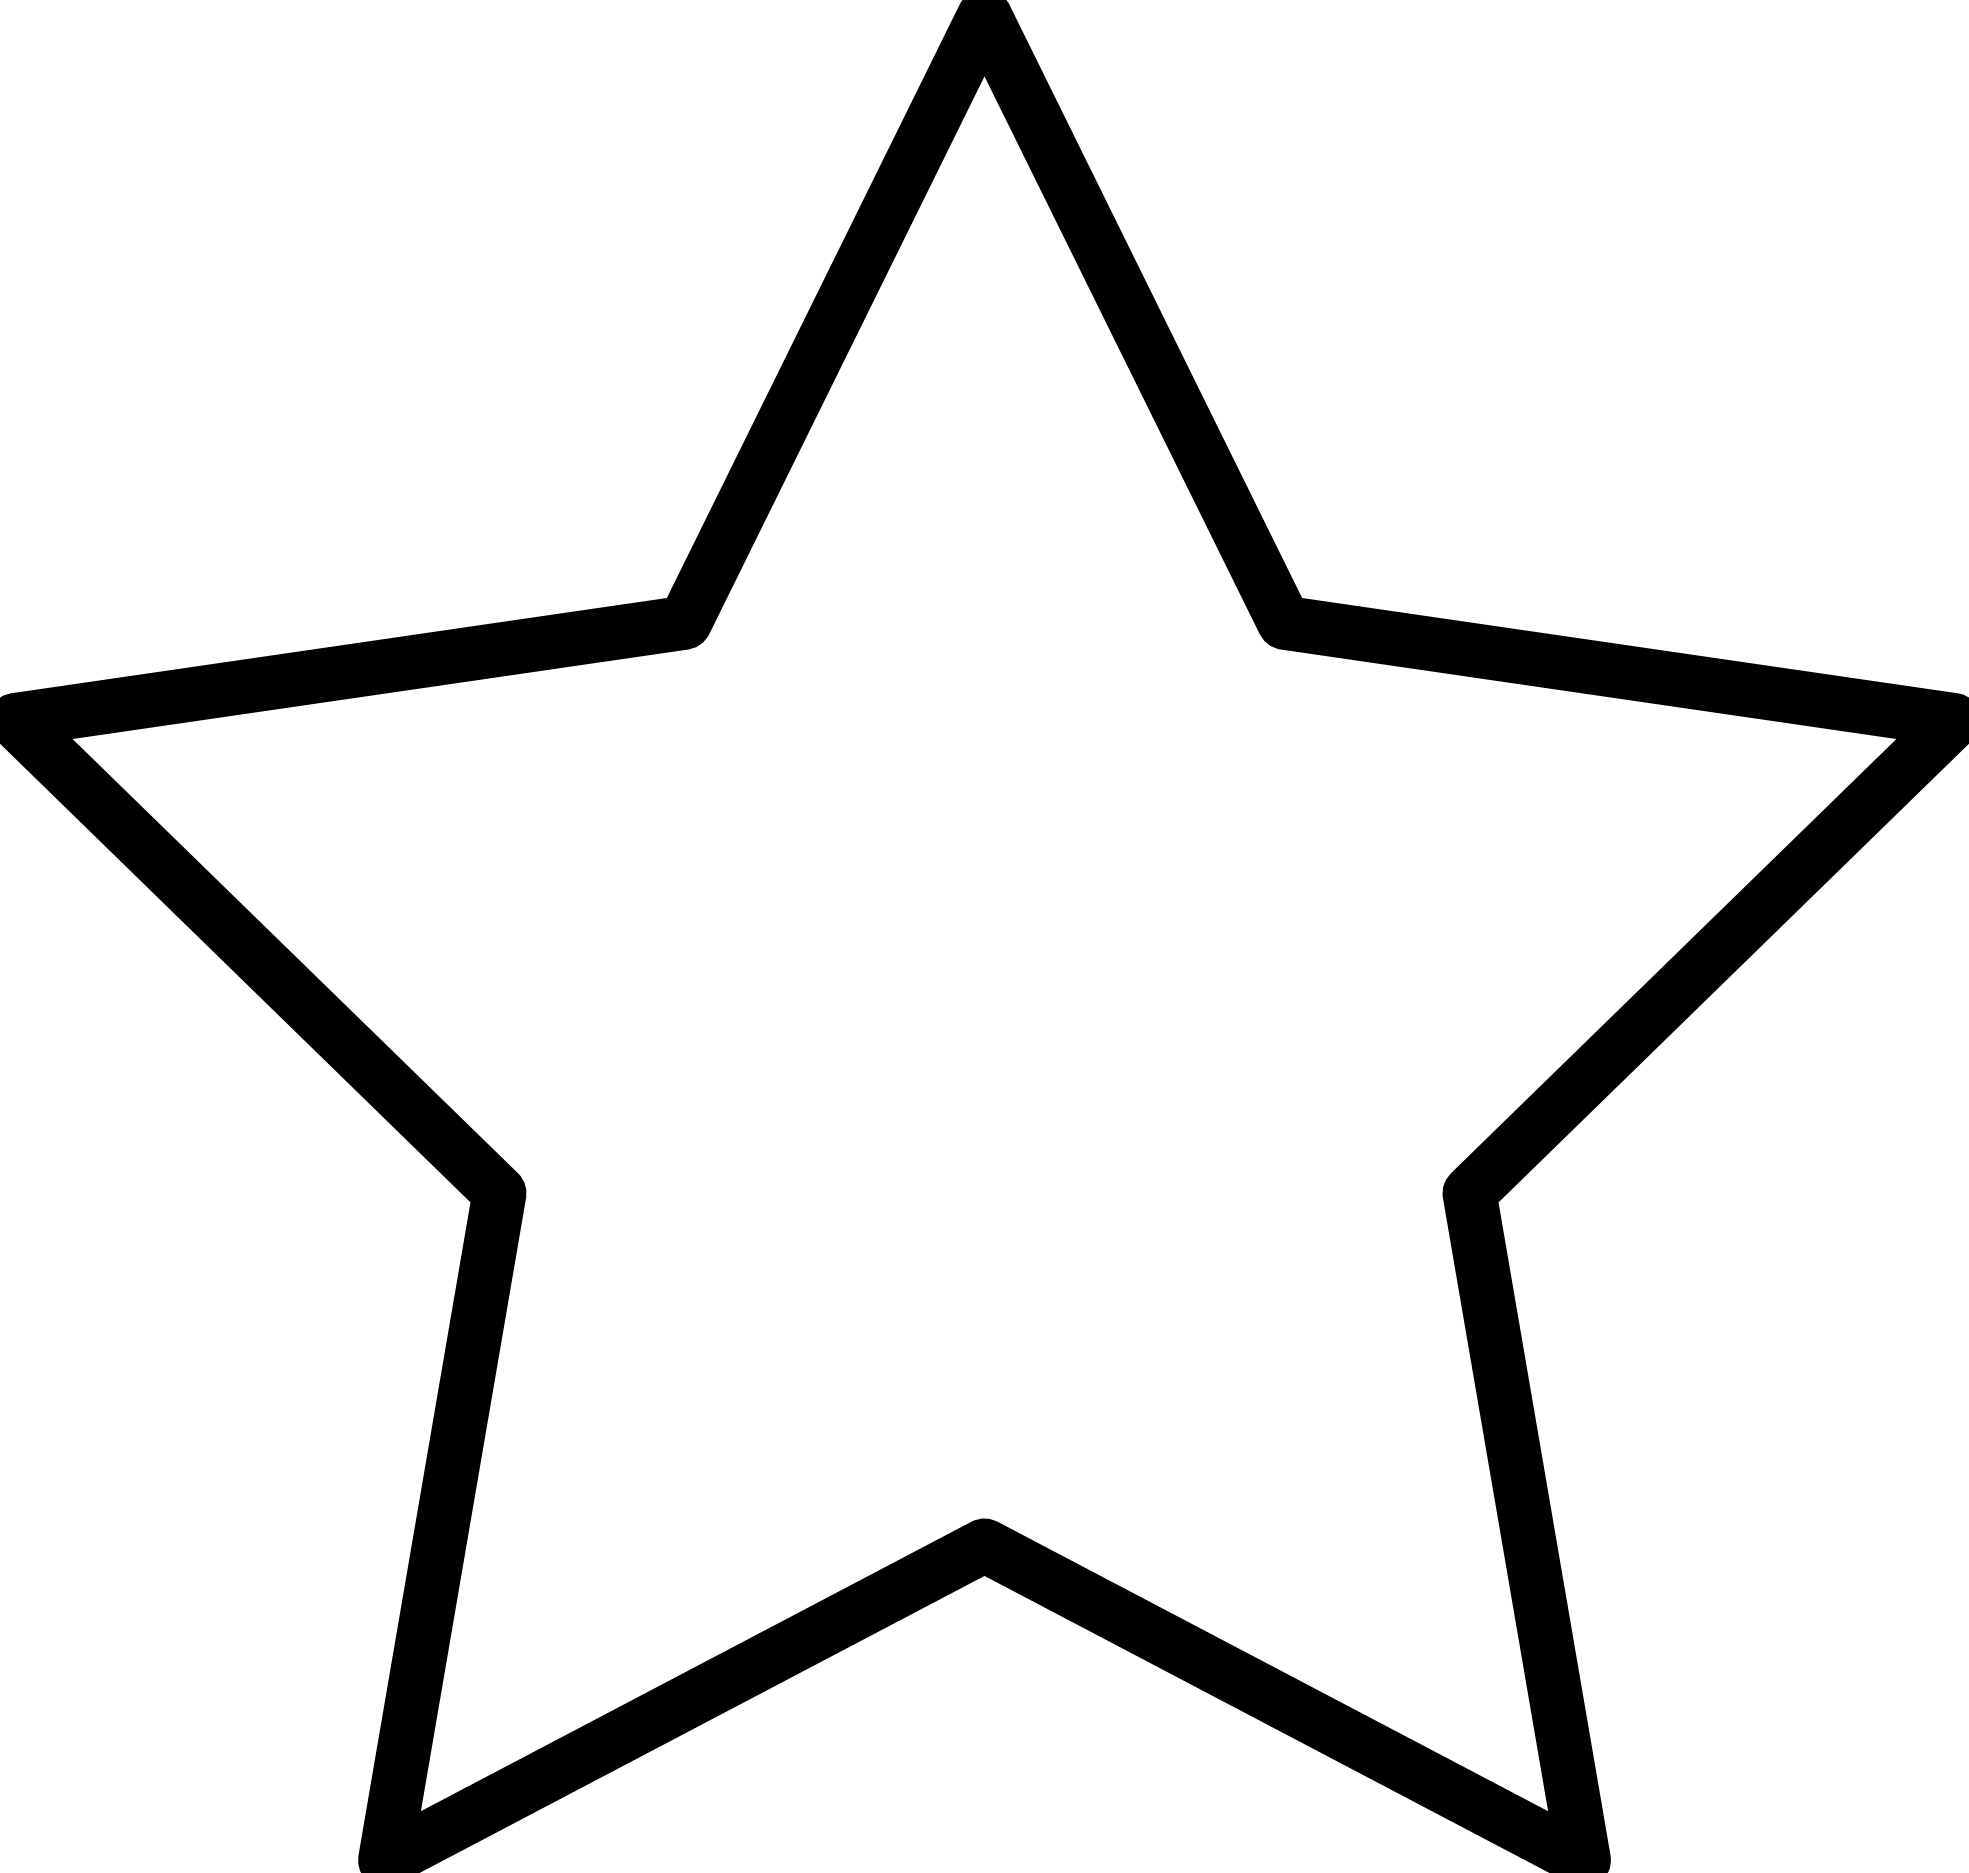 star-clipart-black-and-white-4cbKBedei.png (1969×1873) | kids yarn ... clipart transparent library